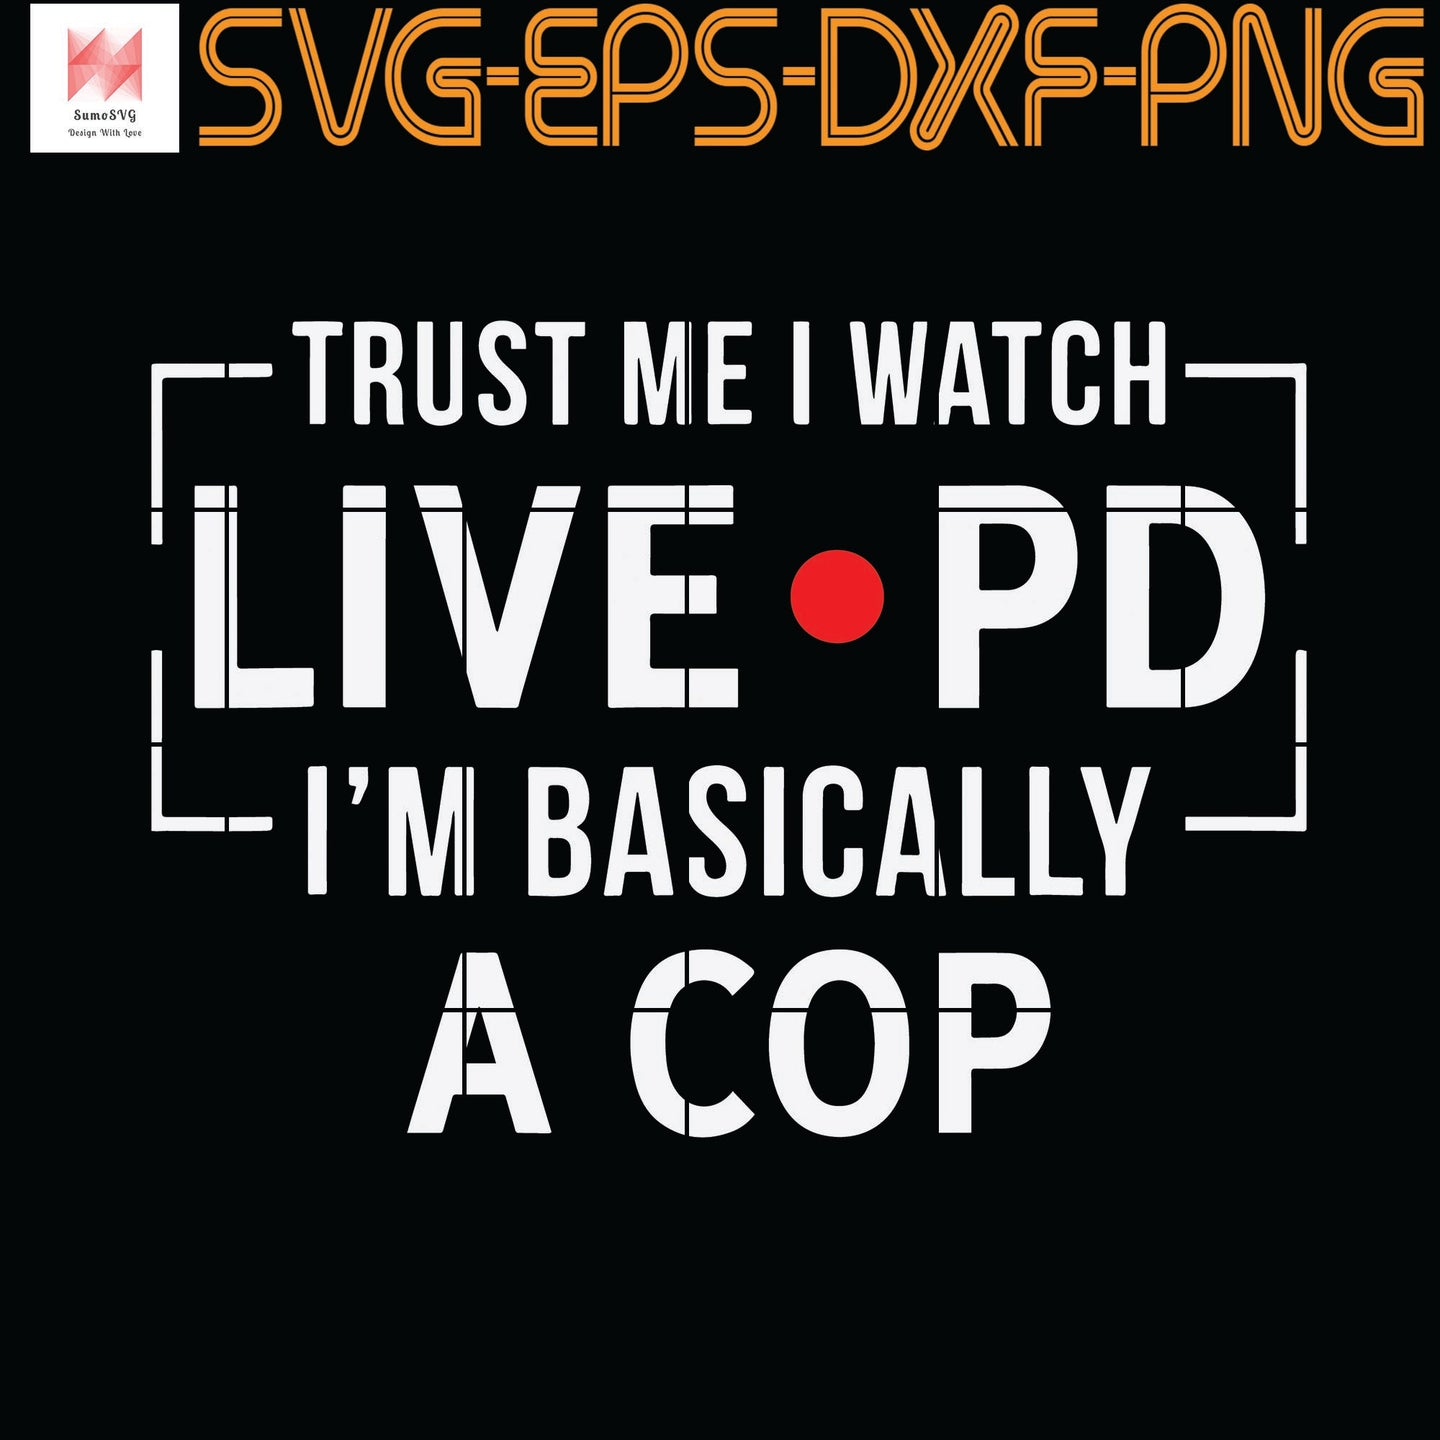 Trust Me I Watch Live P And D I'm Basically A Cop, Quotes, Funny Quotes, Cameo, Cricut, Silhouette, SVG, PNG, Eps, DXF, Digital Download